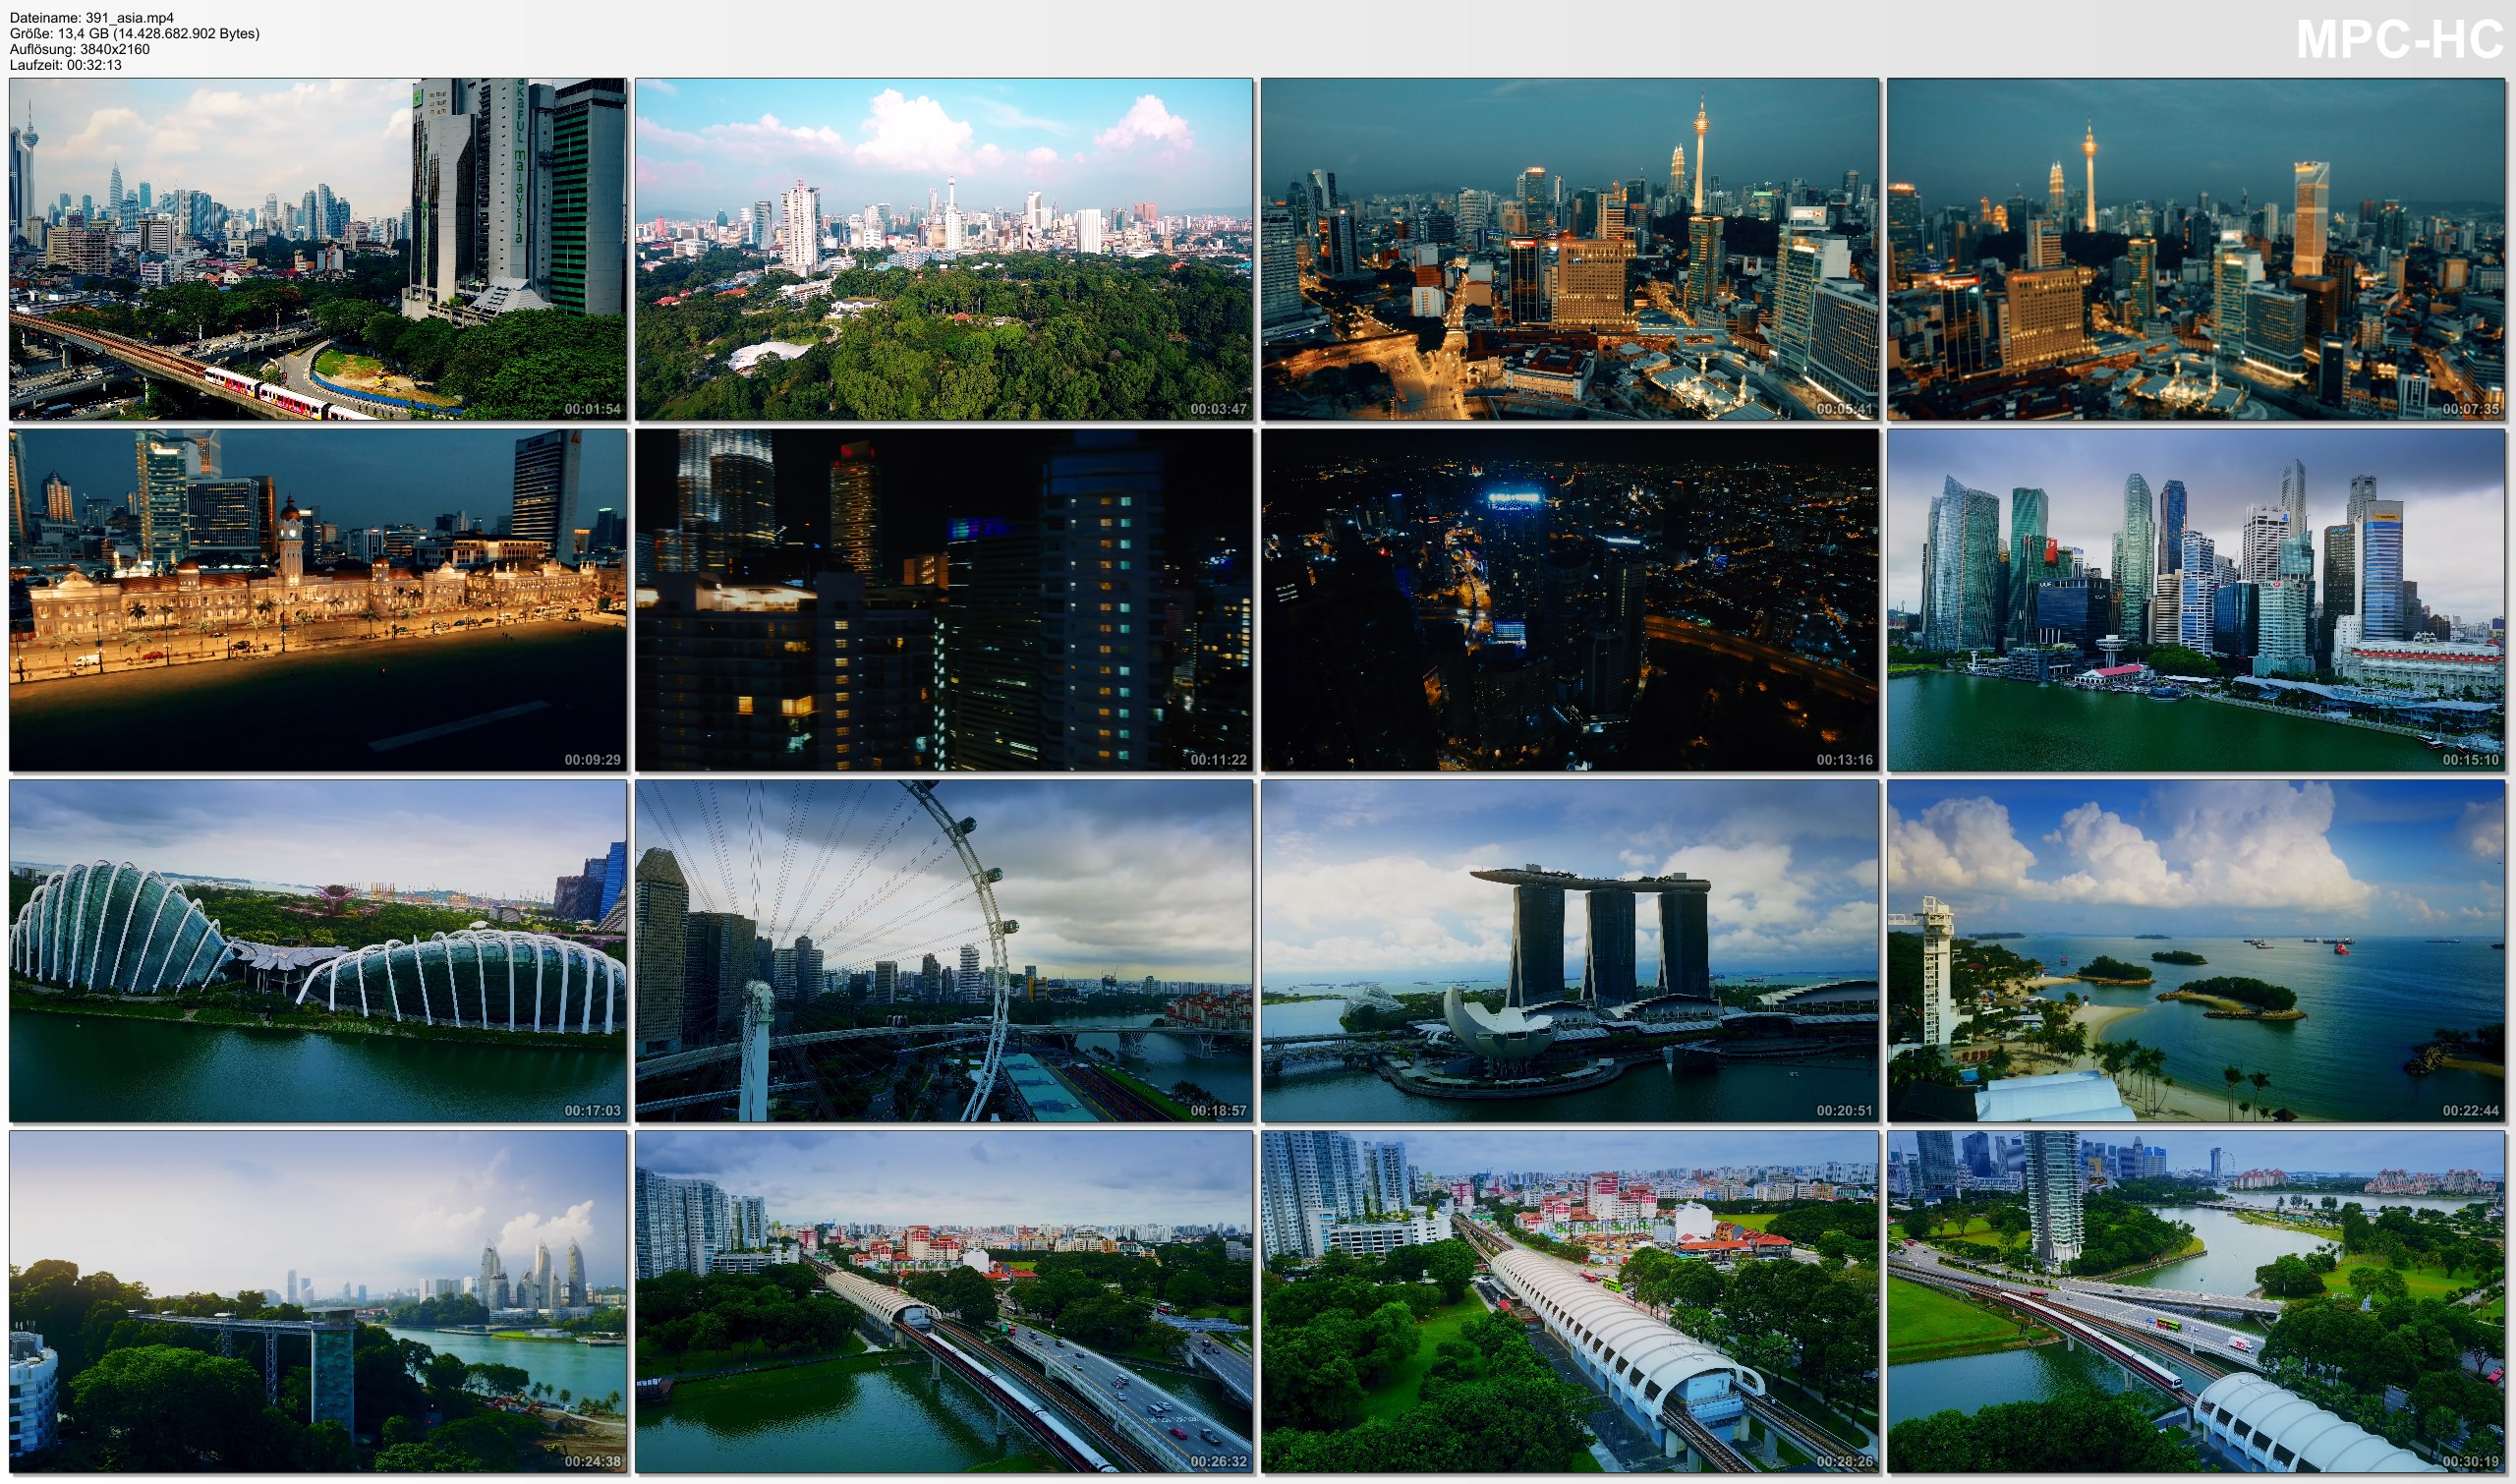 Drone Pictures from Video 【4K】Drone Footage | Kuala Lumpur X Singapore *EXTENDED* Southeast Asia 2019 | Cinematic Aerial Film